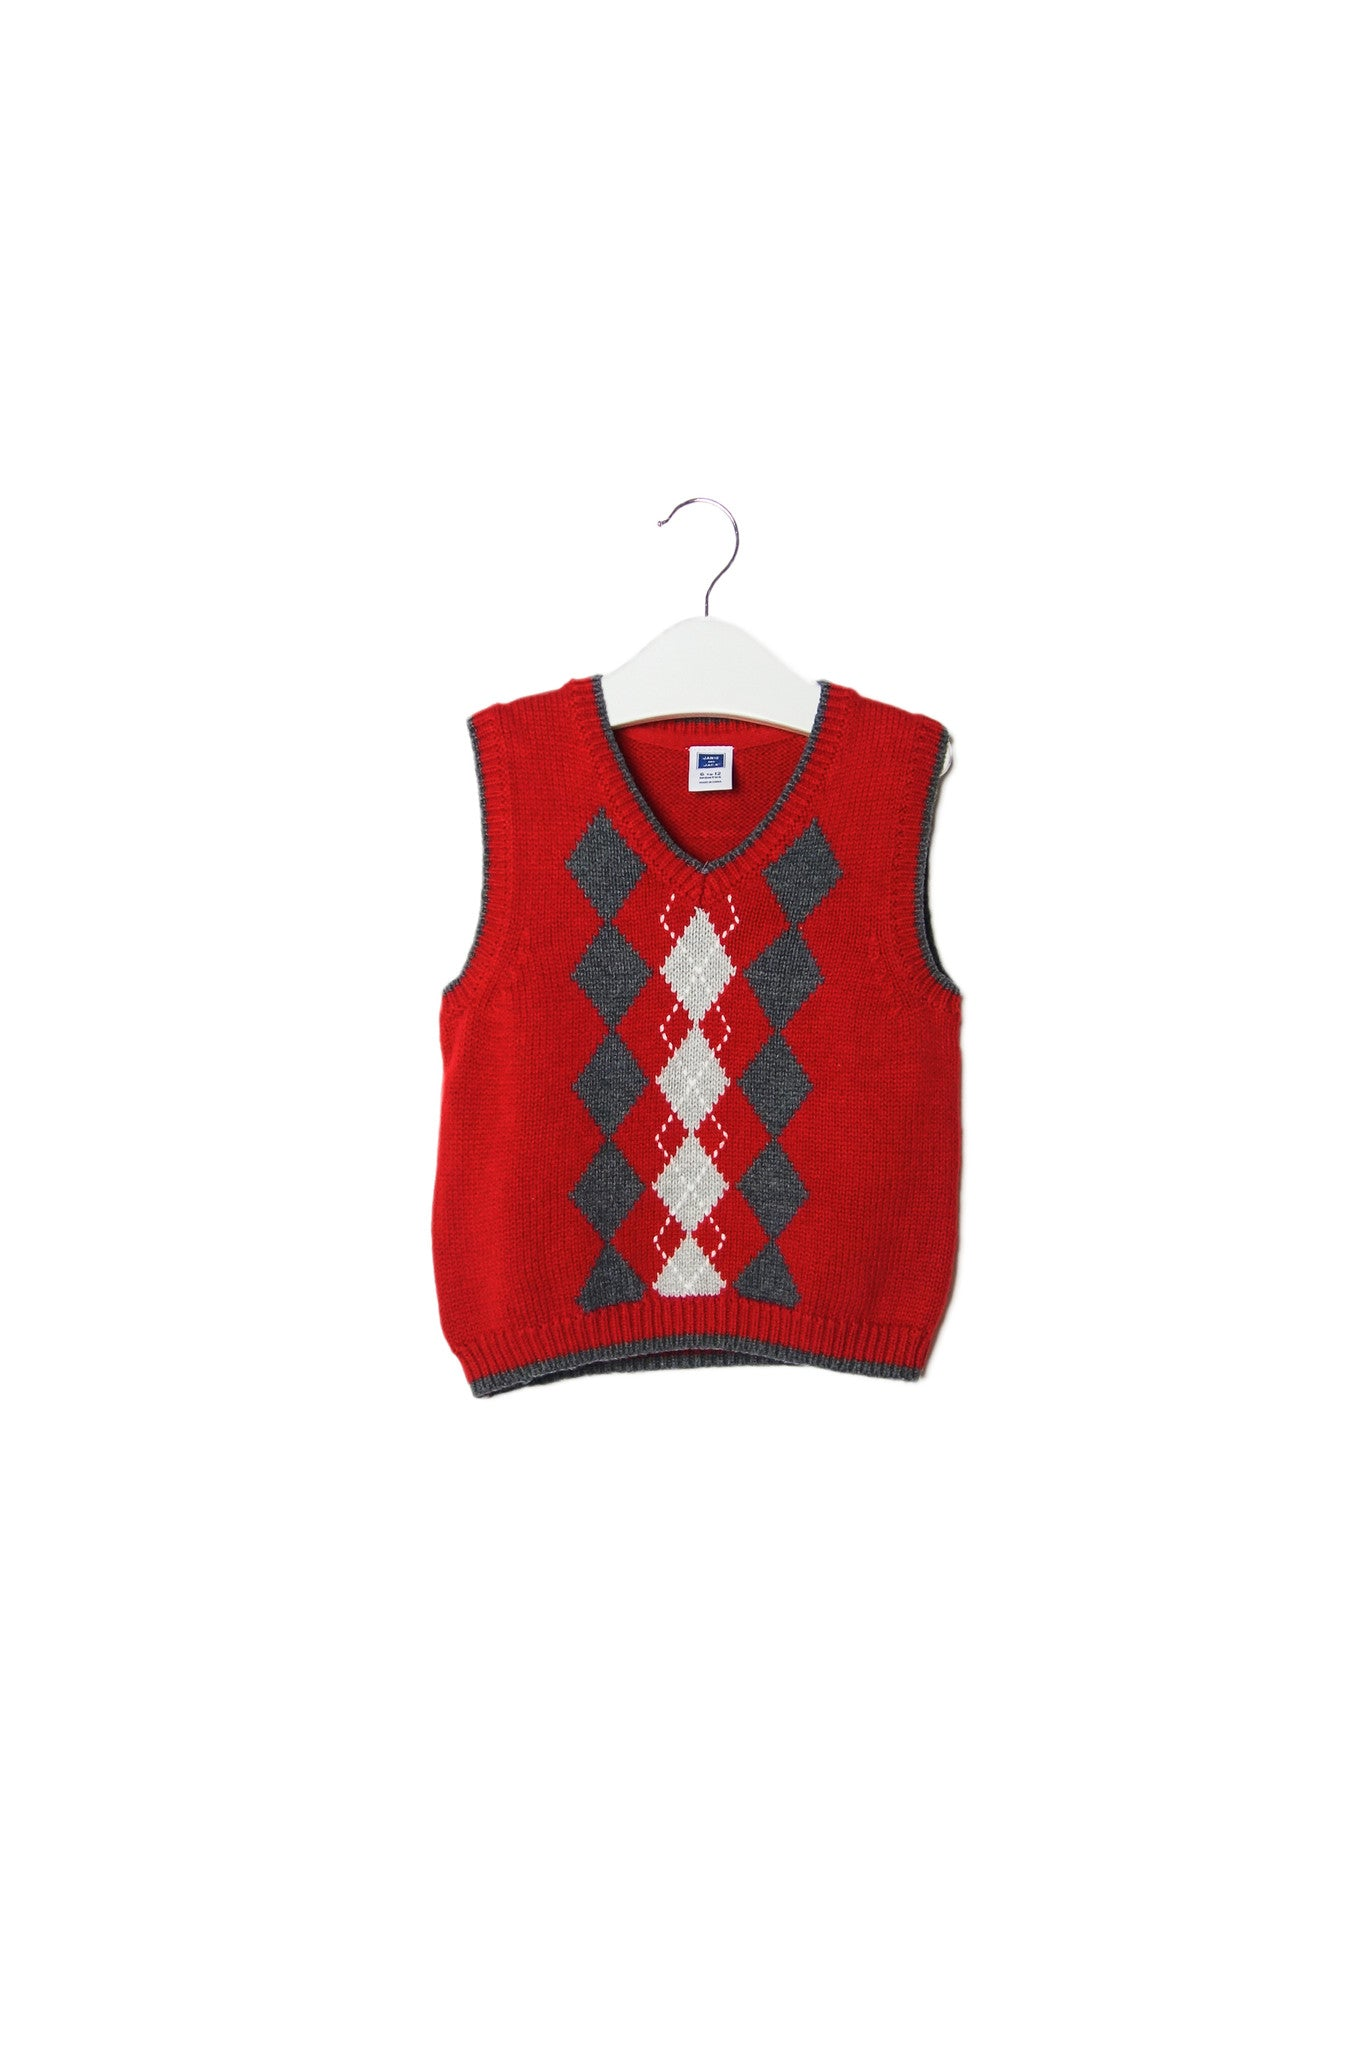 10003335 Janie & Jack Baby~Sweater 6-12M at Retykle